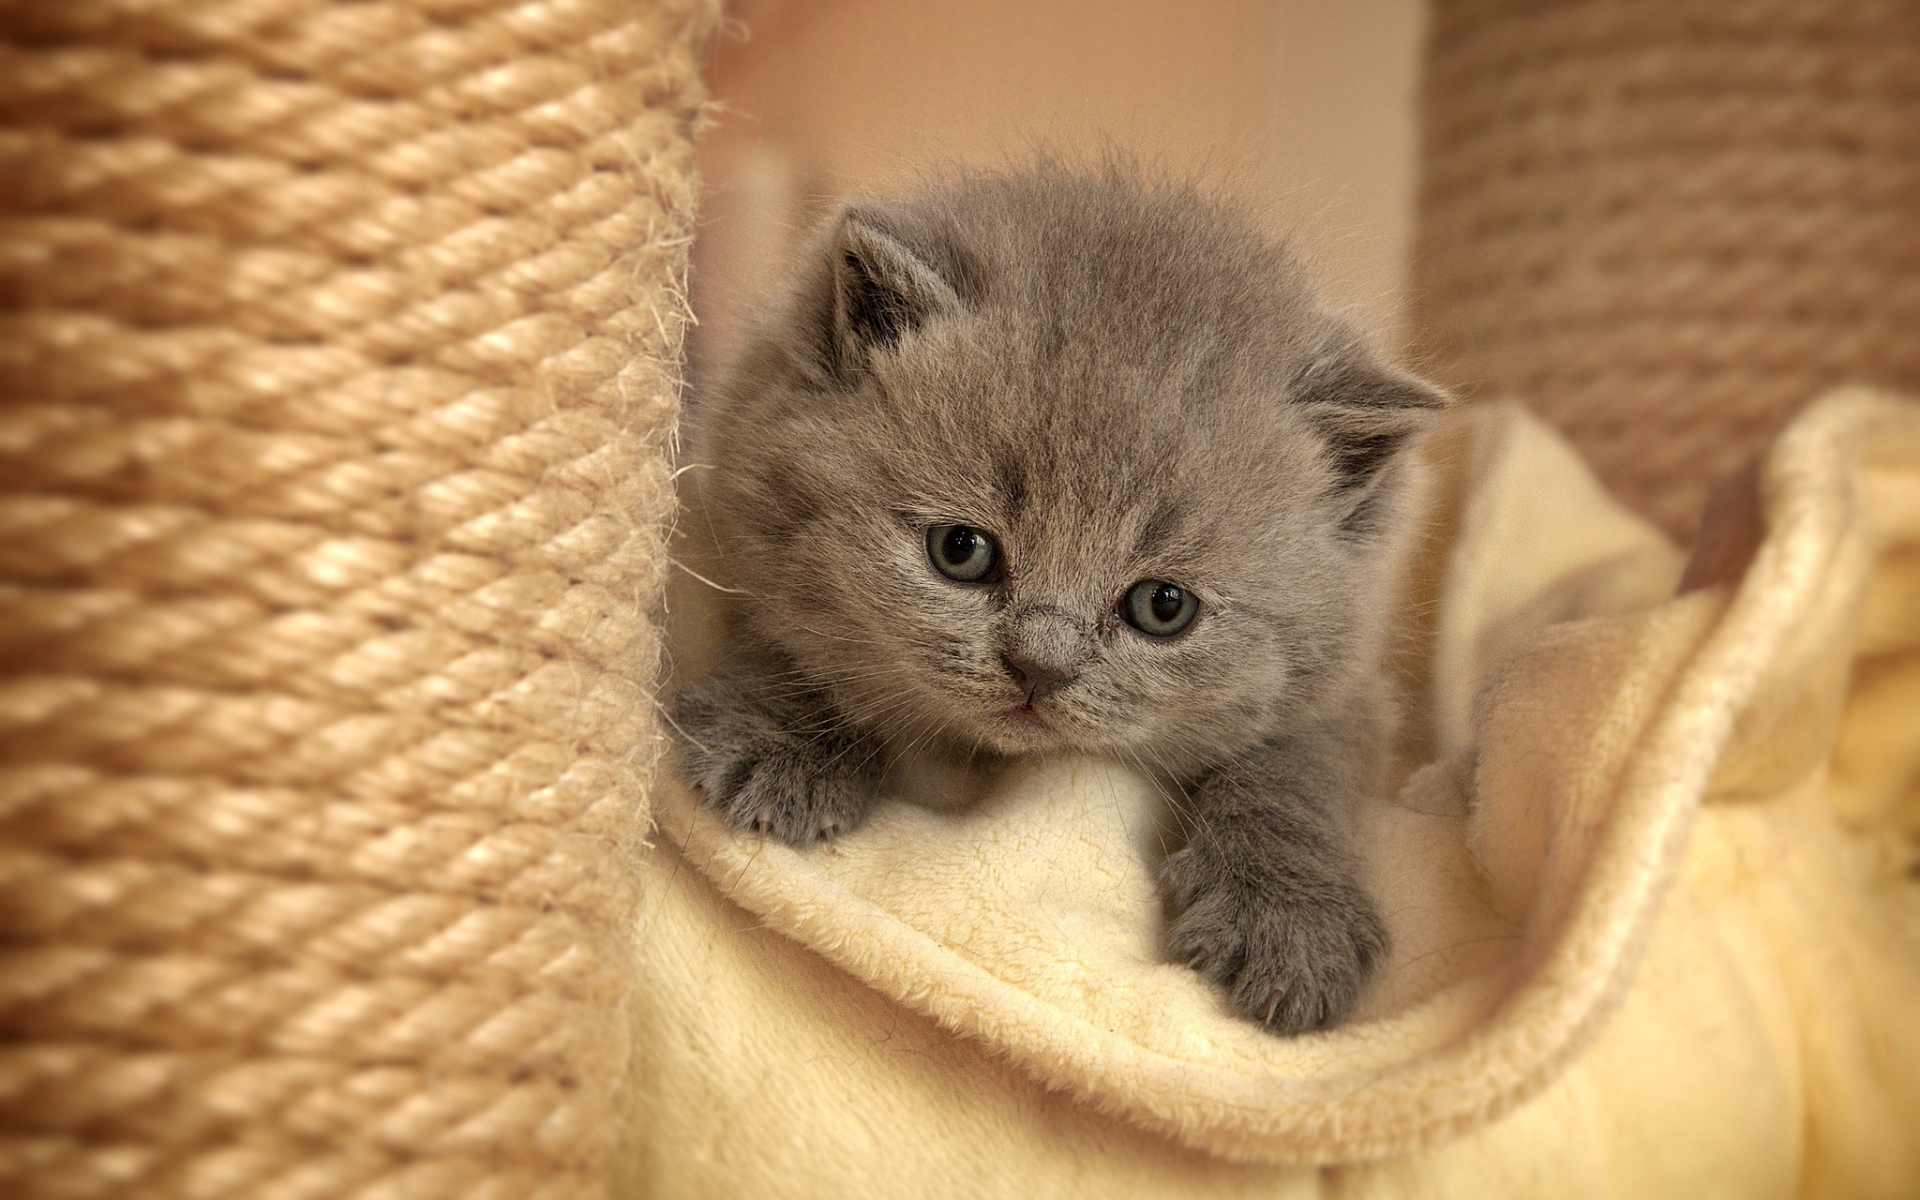 Gray furry kitten